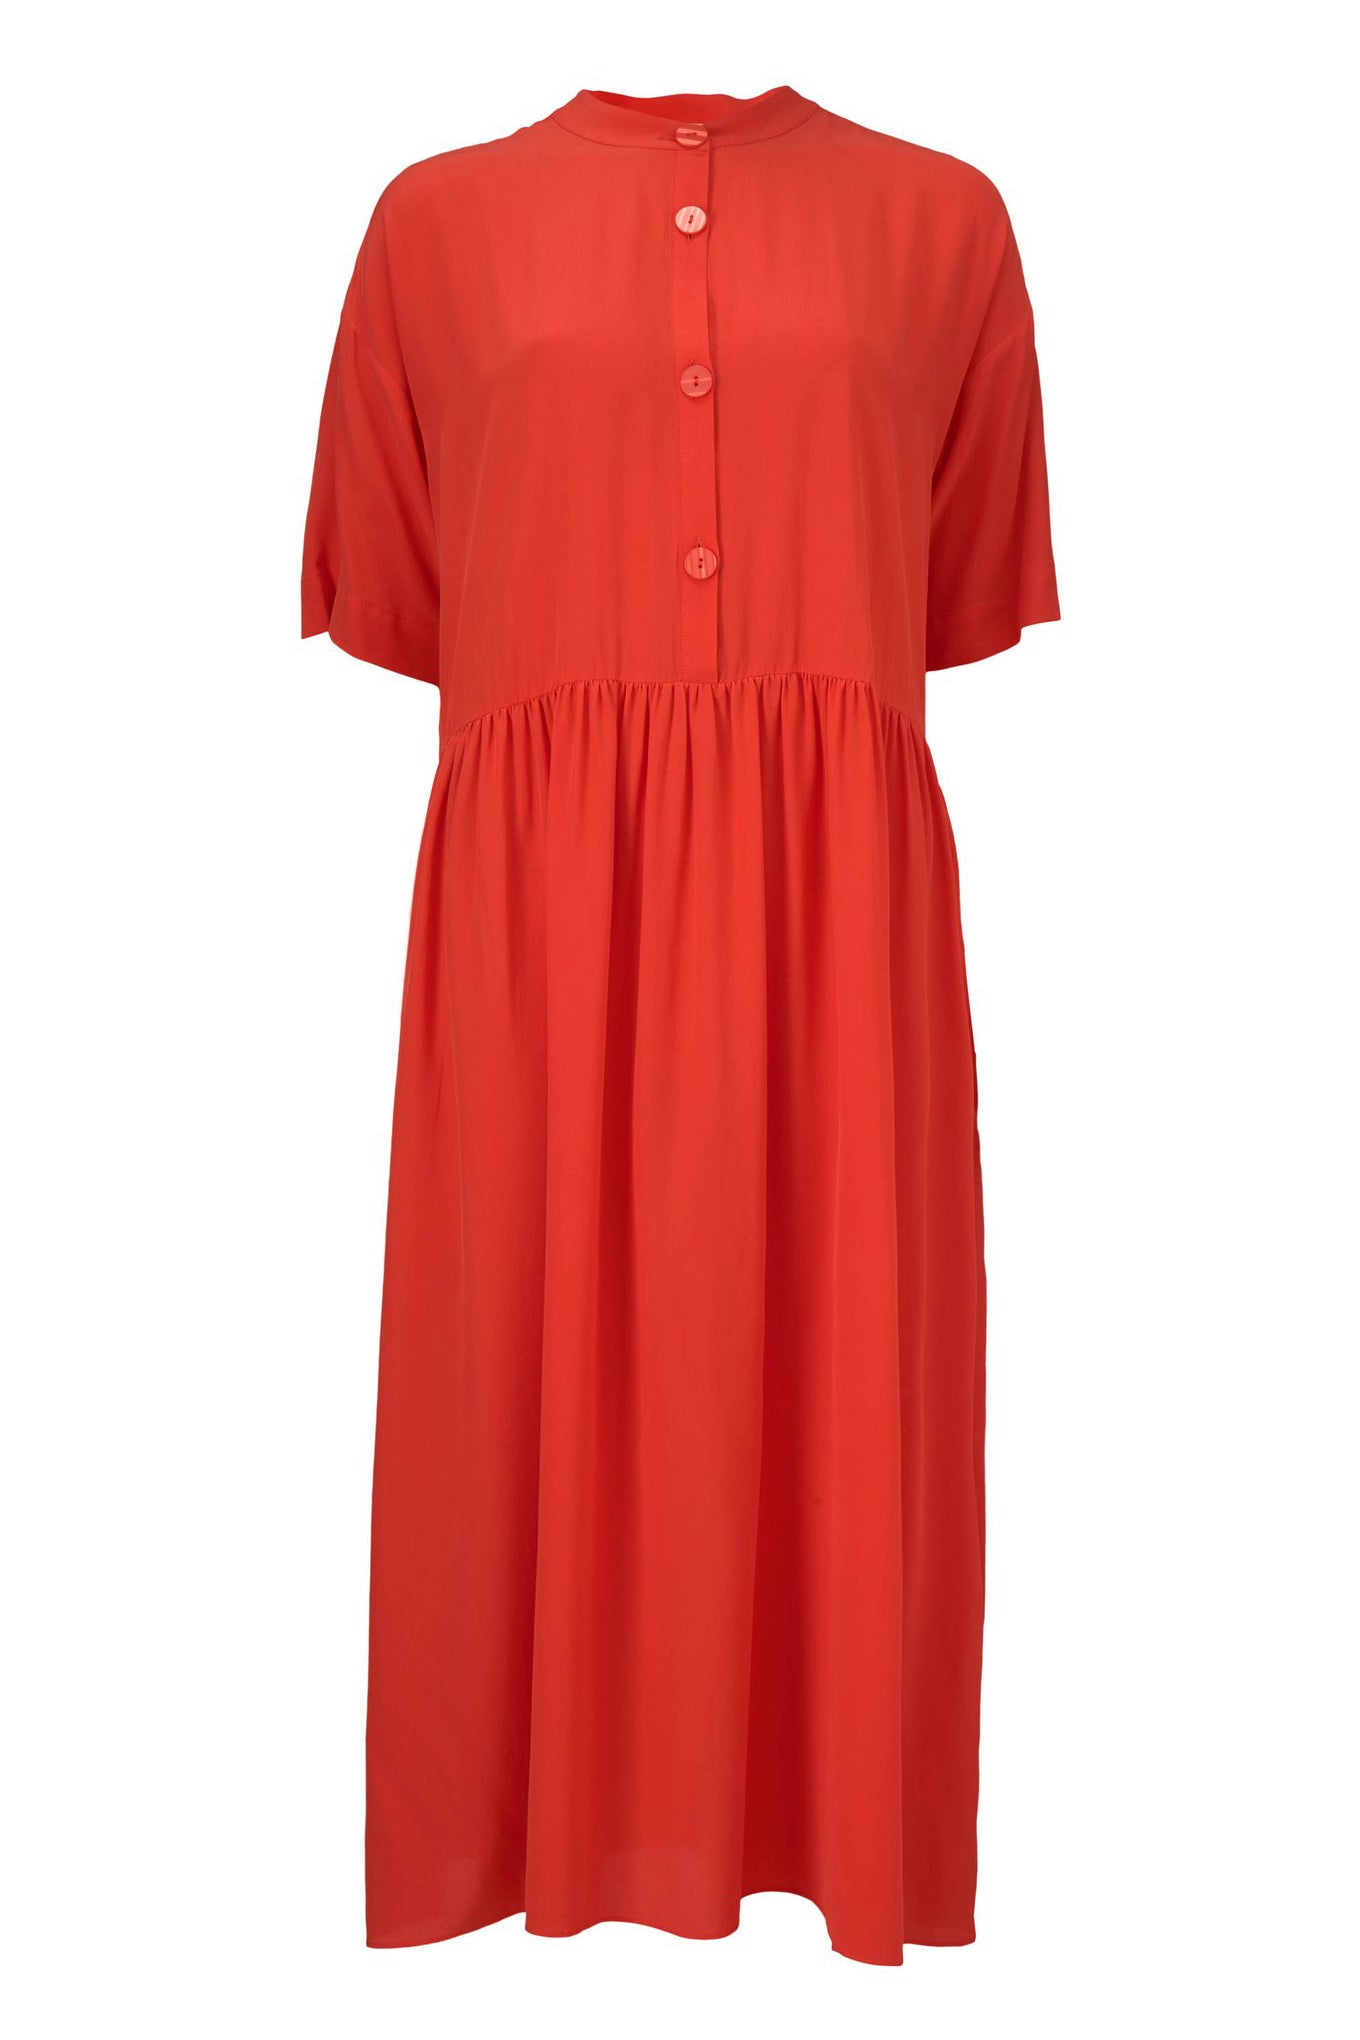 BLAKE DRESS - GRENADINE